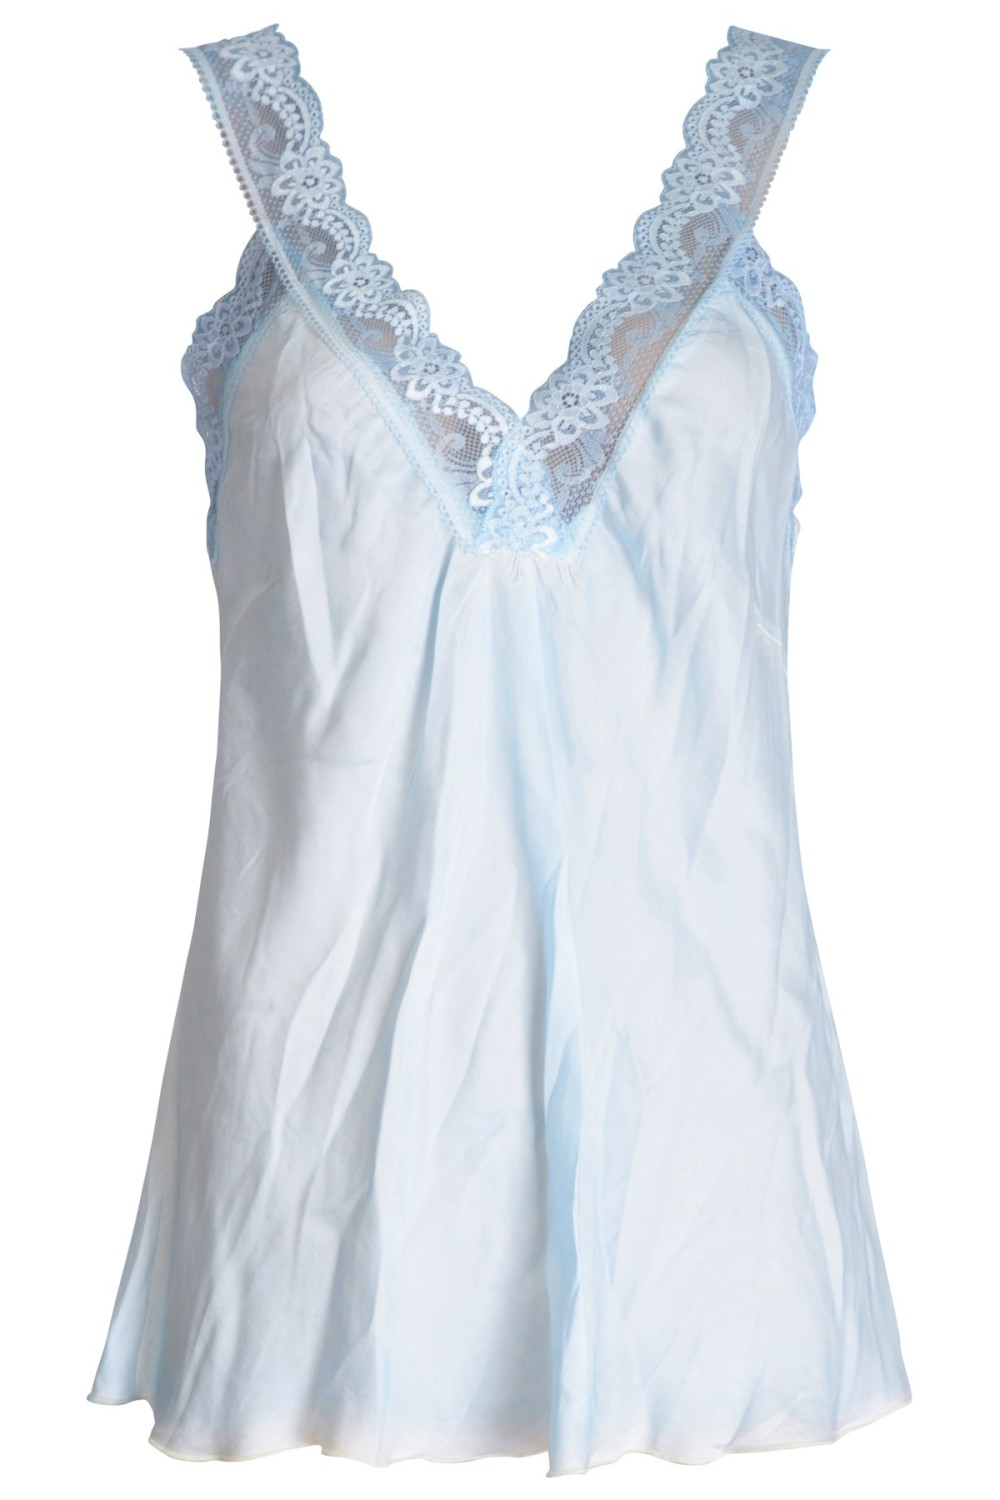 Le Ballon Shirt / Top Blauw 21336